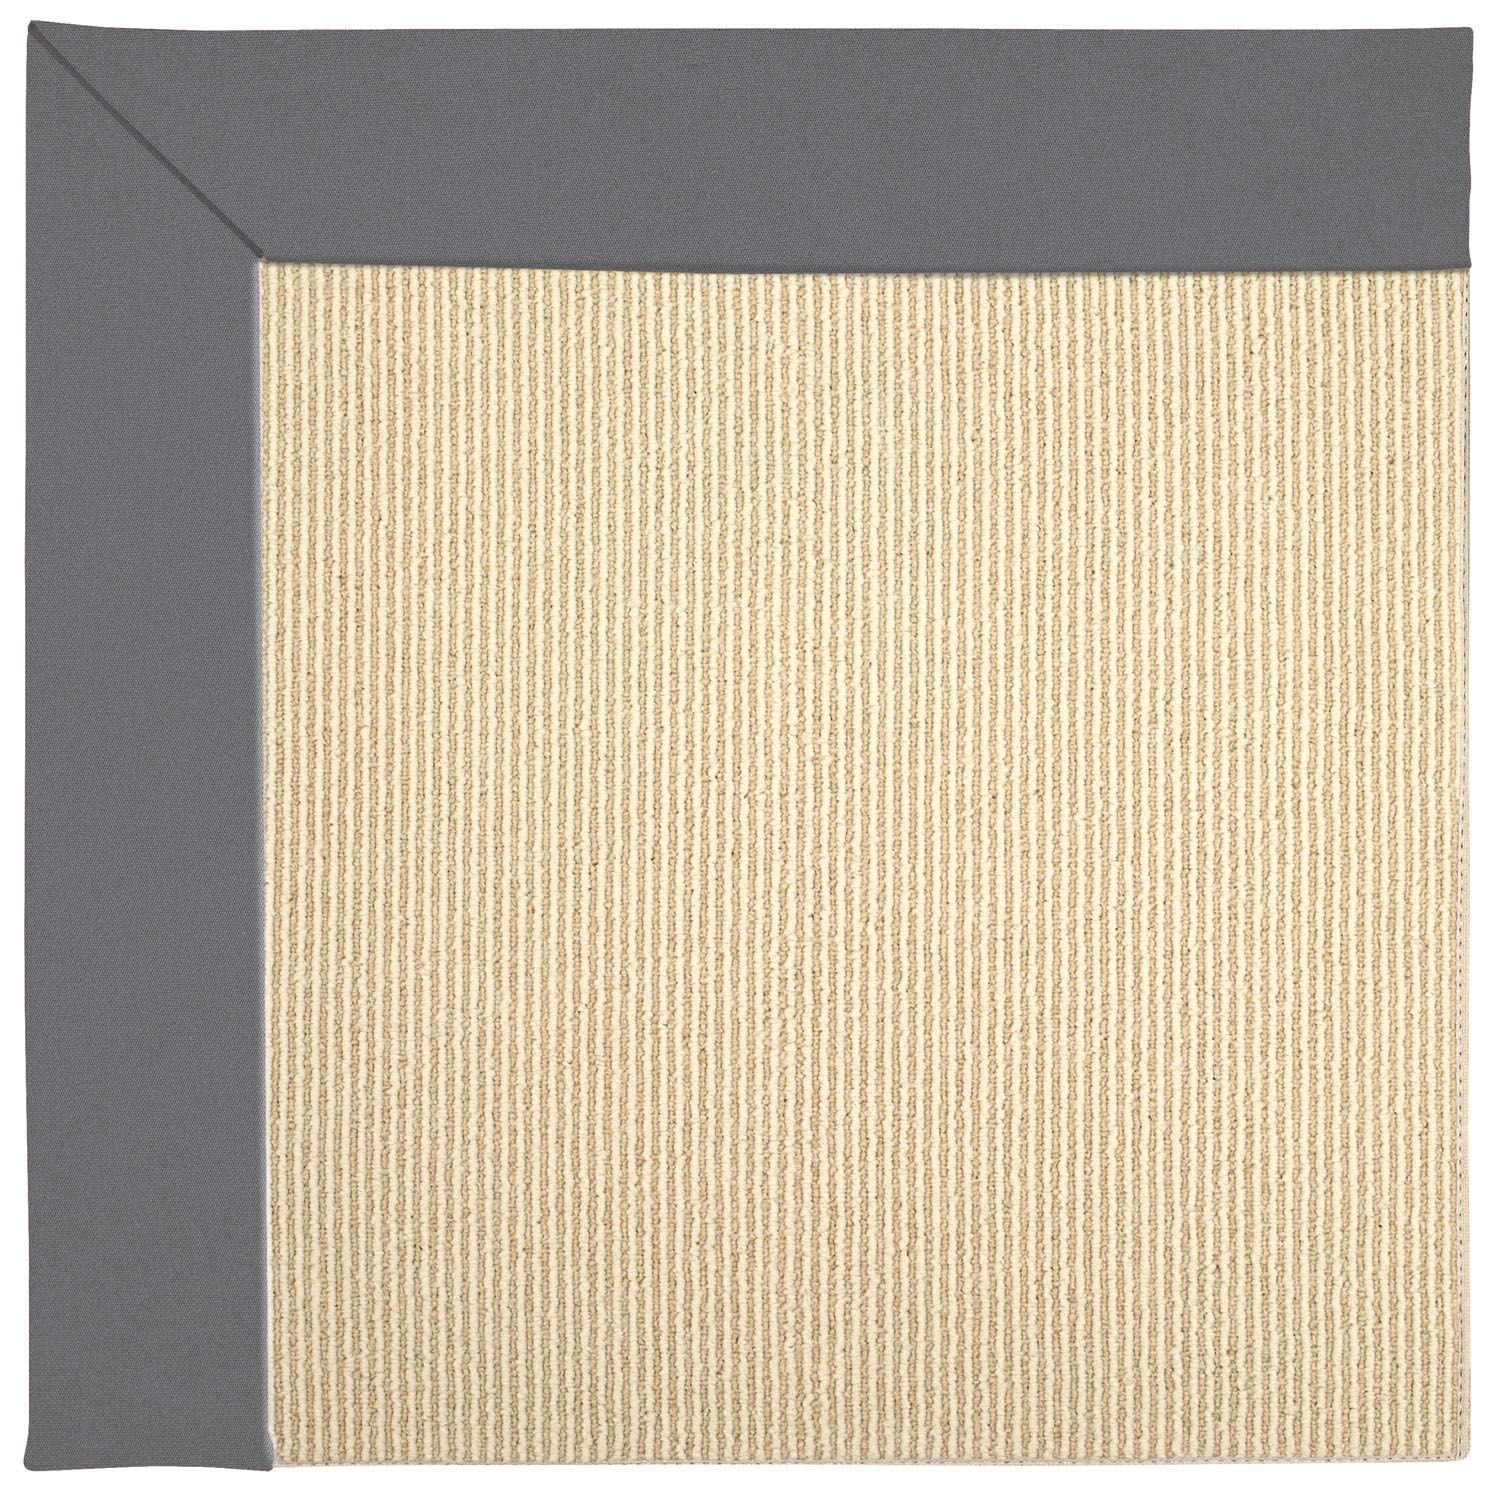 Lisle Sisal Machine Tufted Beige/Ash Indoor/Outdoor Area Rug Rug Size: Square 4'